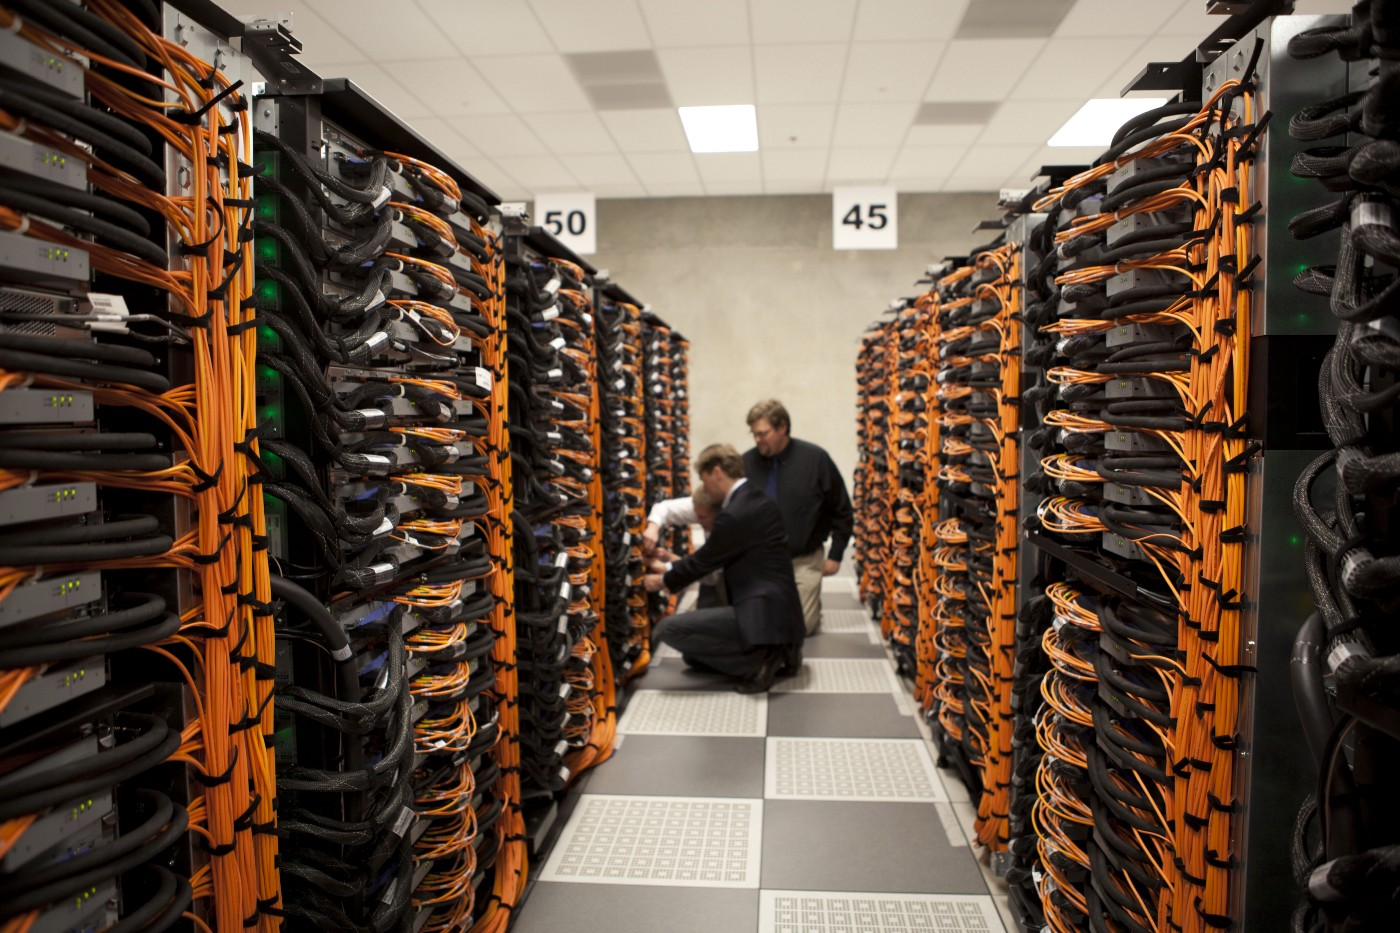 An image of a bunch of servers in a data center.